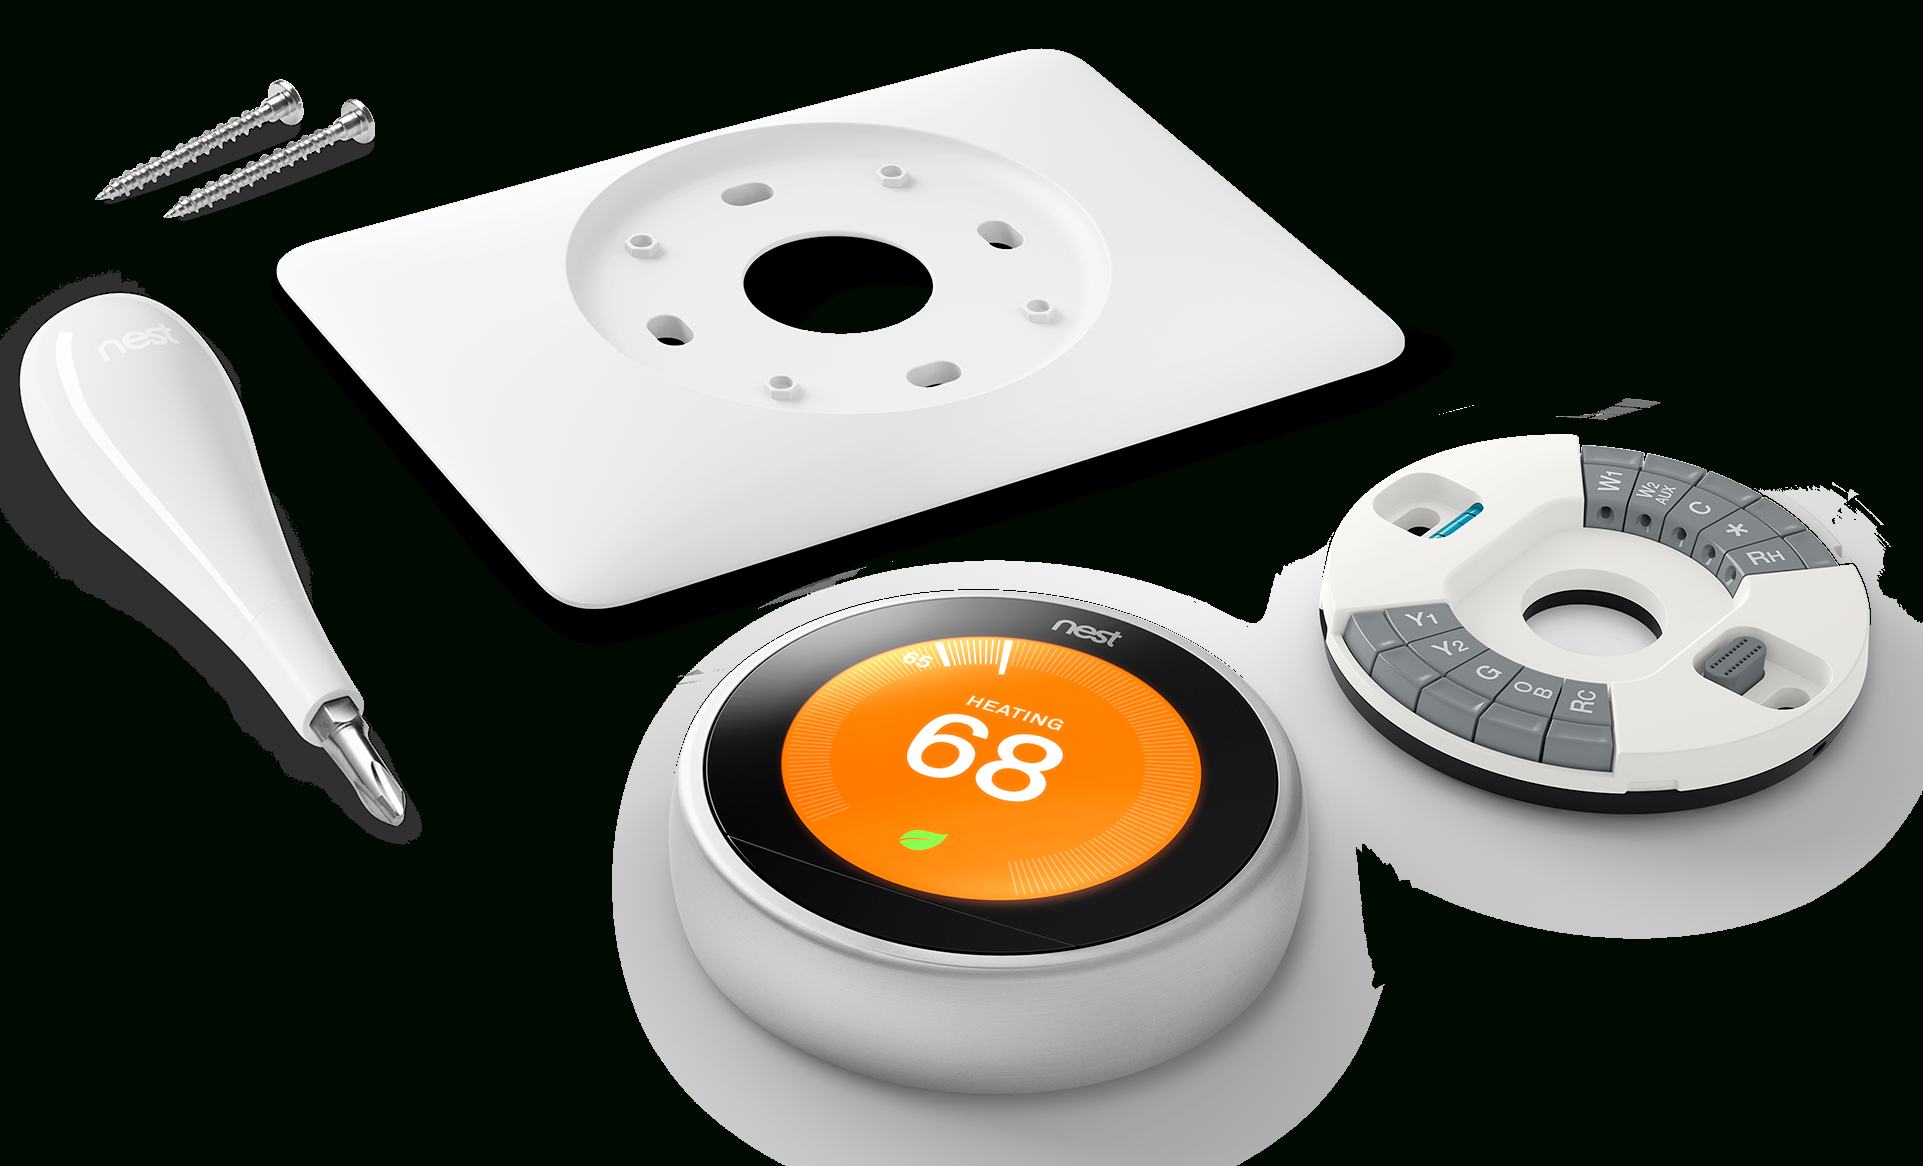 How To Install Your Nest Thermostat - Nest E Wiring Schematic